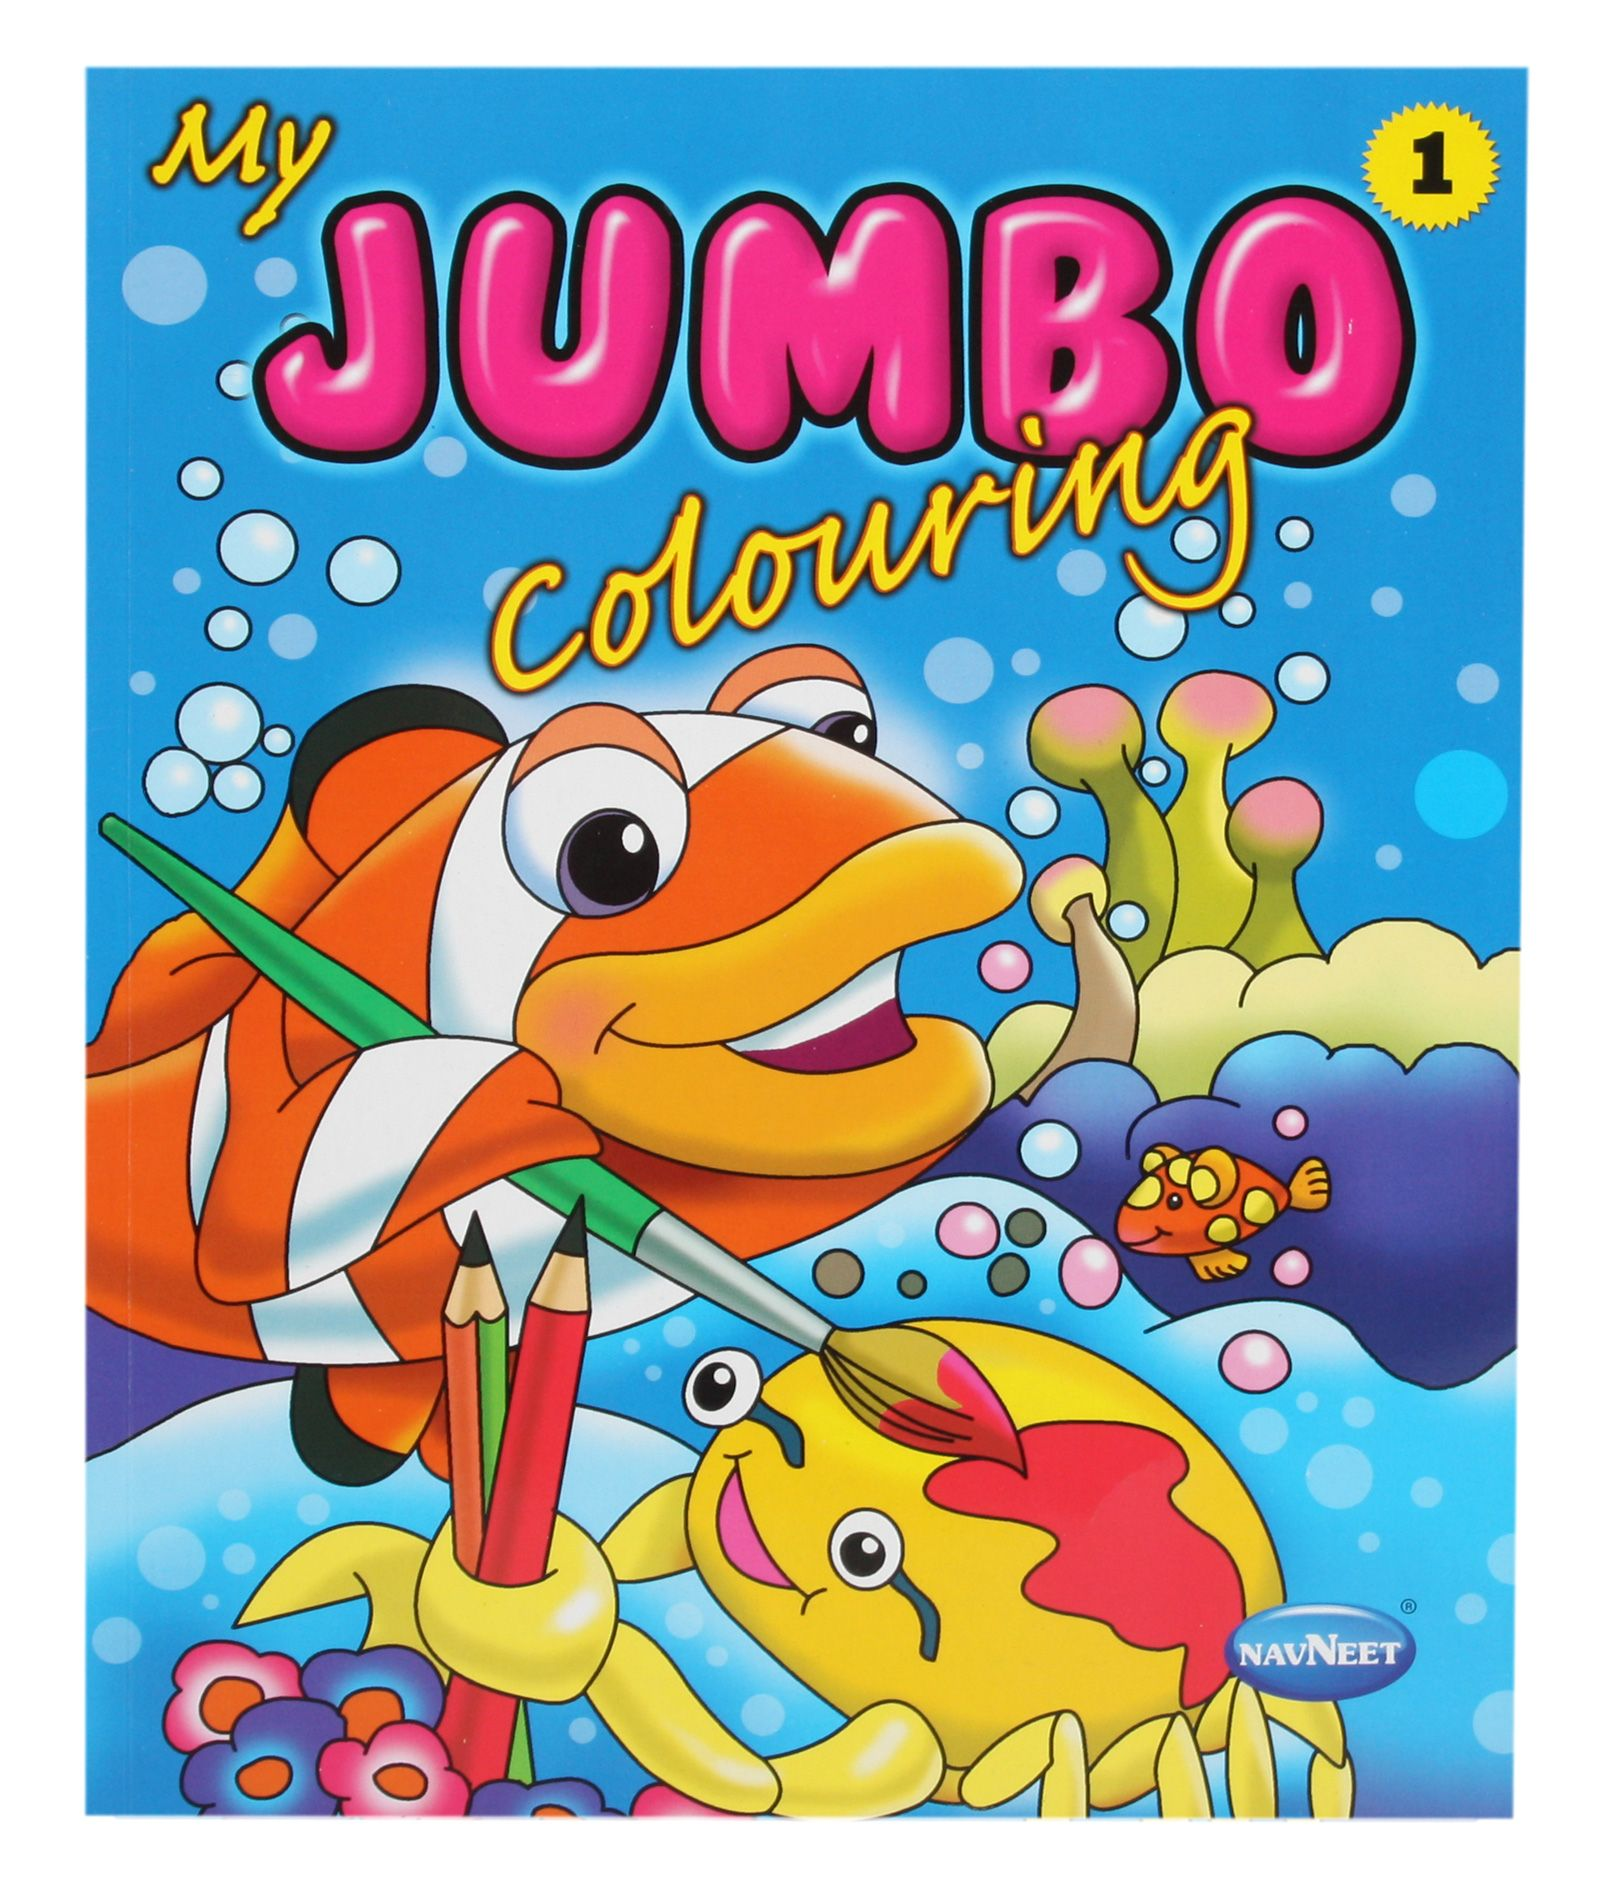 Childrens online colouring book - Navneet My Jumbo Coloring Book